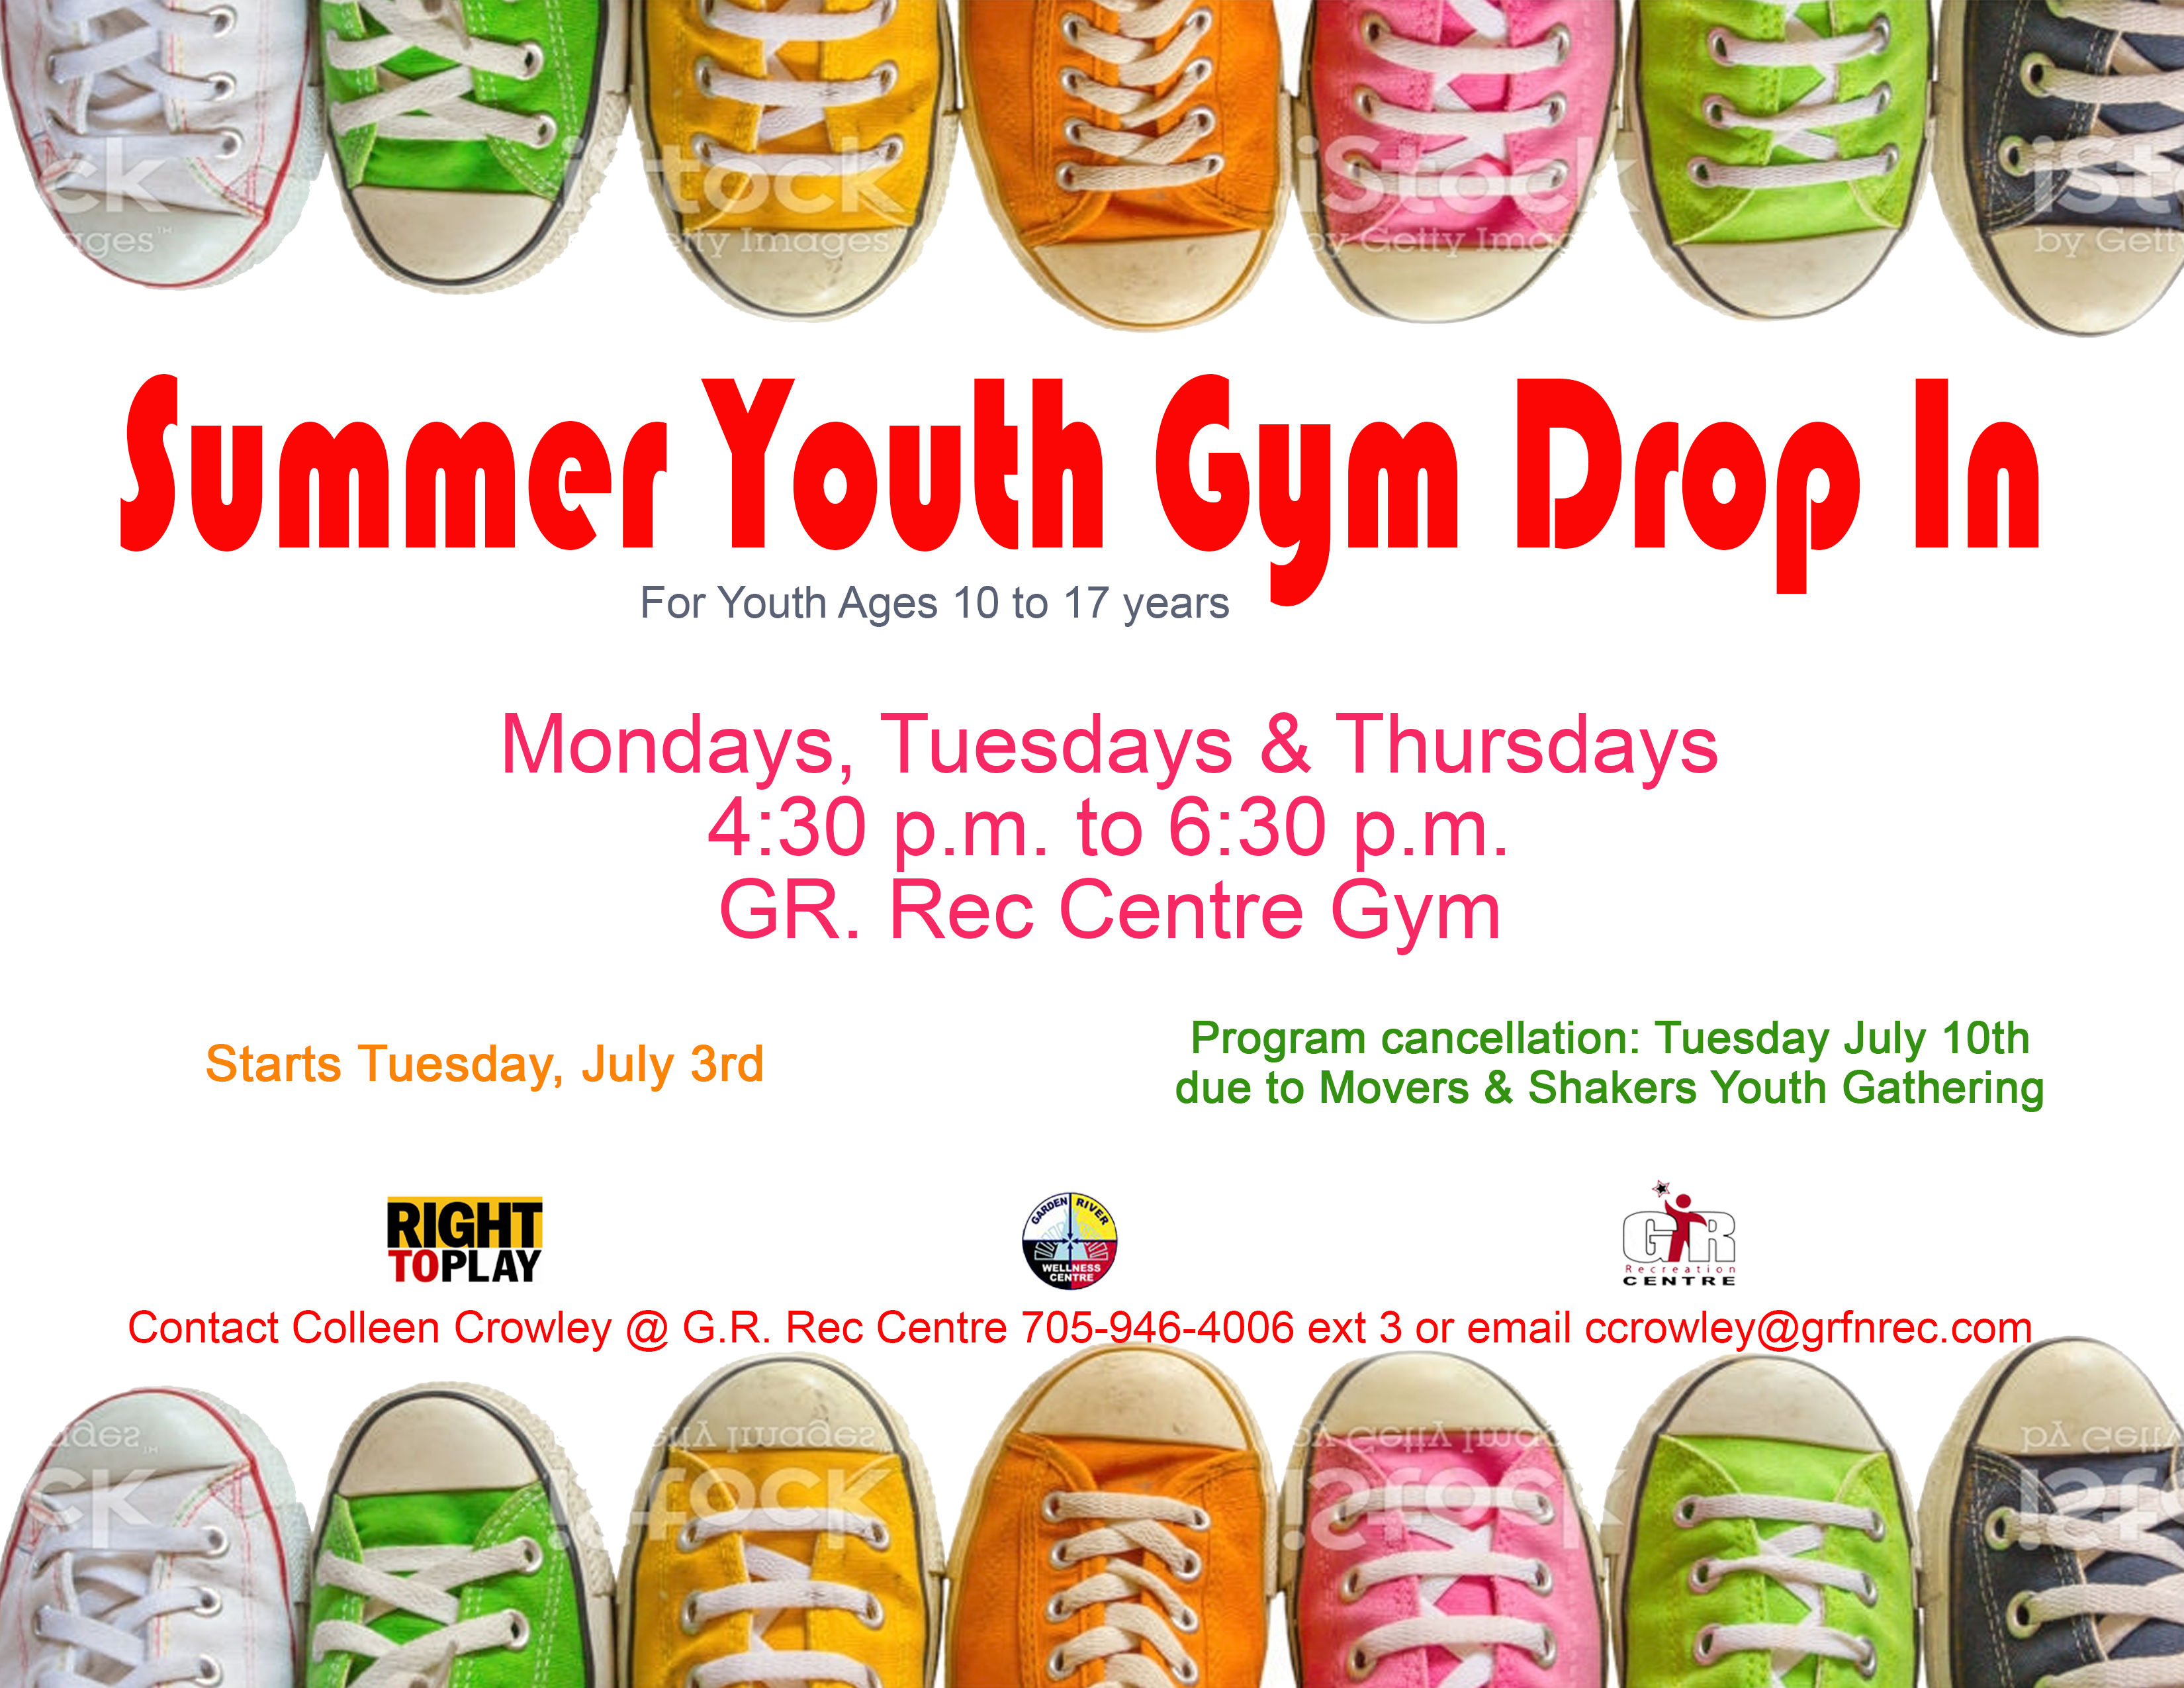 9f29061208f Summer Youth Gym Drop In for Youth ages 10 to 17 years